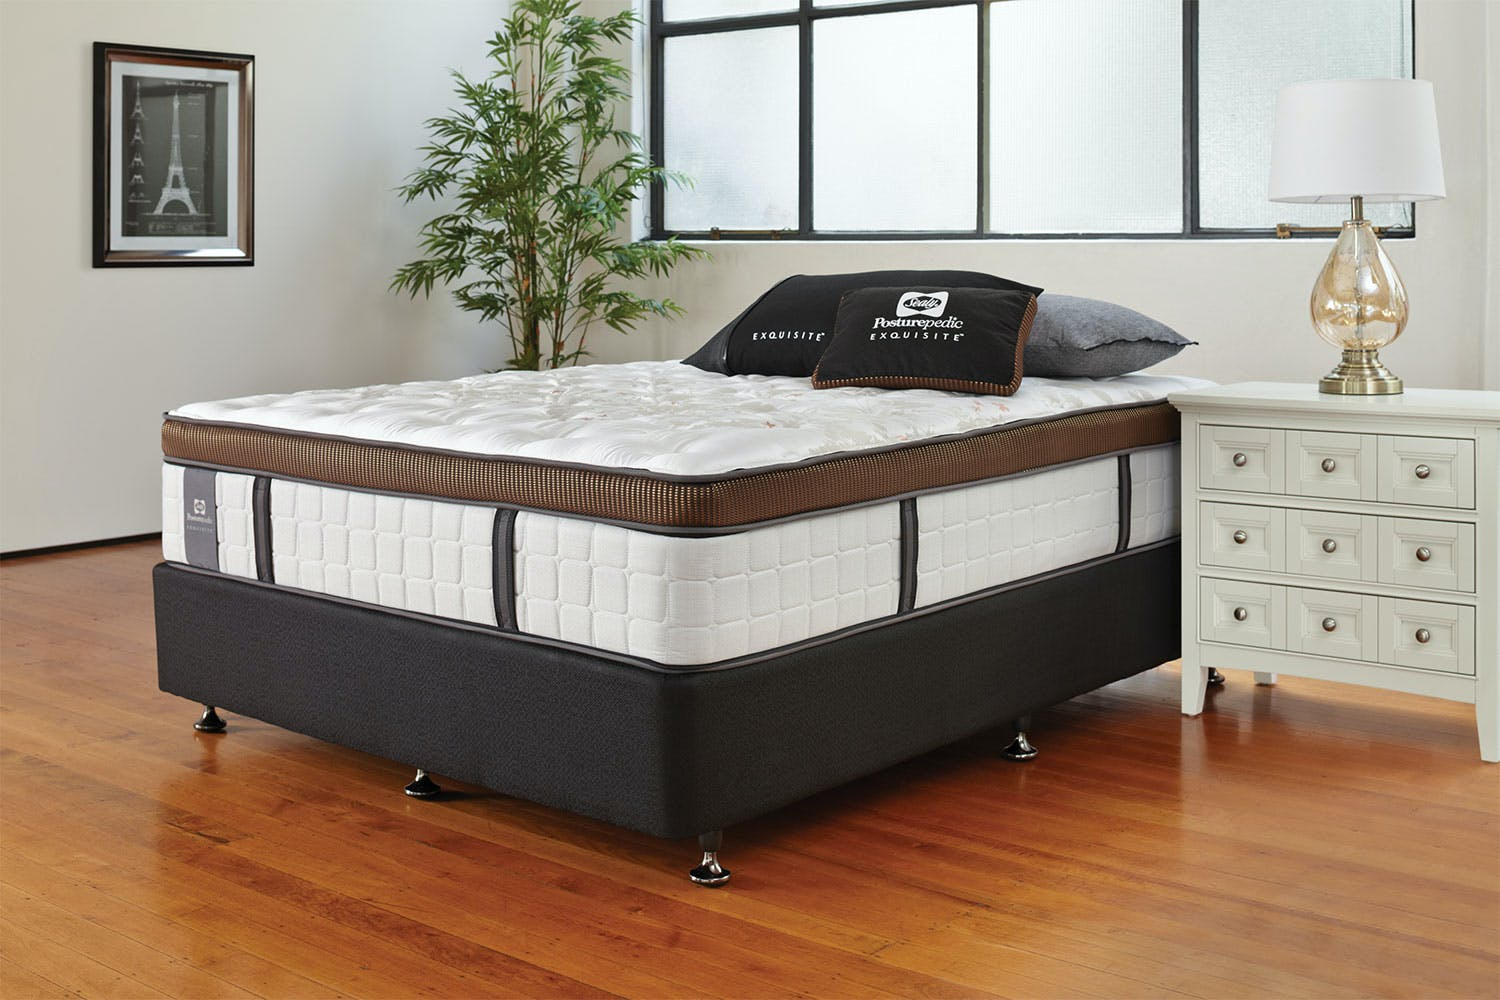 Image of Kingston Firm Californian King Bed by Sealy Posturepedic